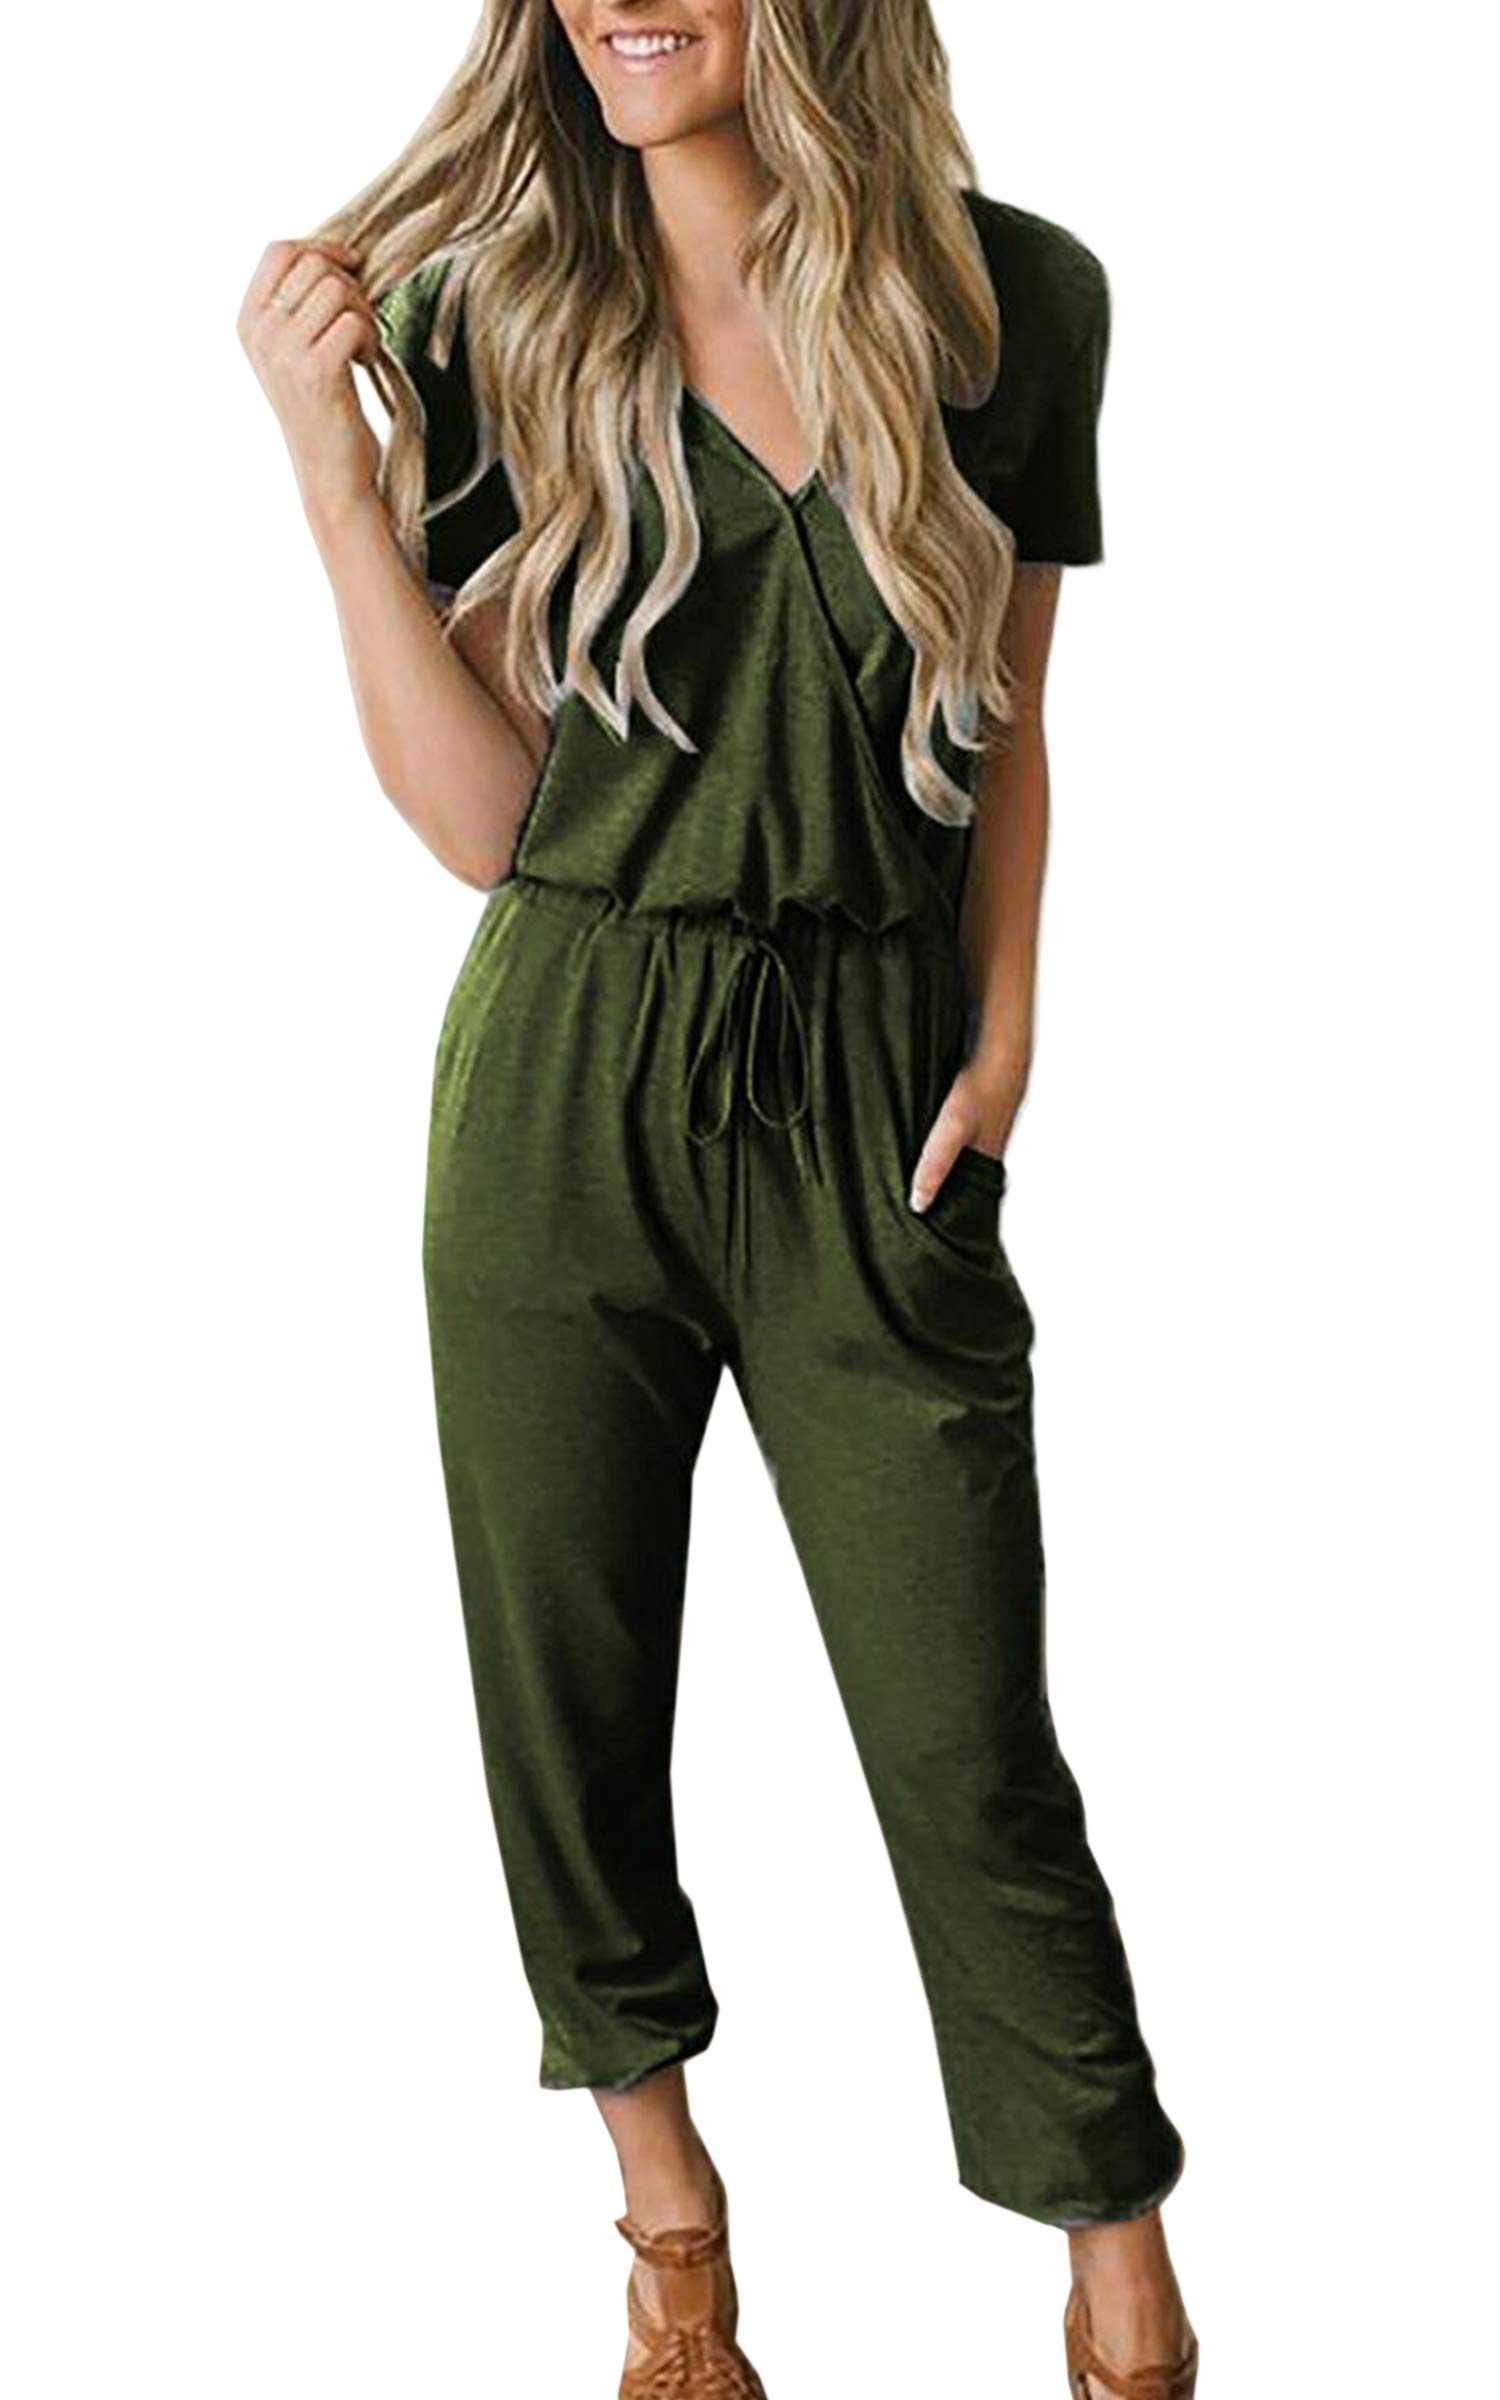 ECOWISH Women Jumpsuit Summer Casual V Neck Short Sleeve Wrap Drawstring Waist Jumpsuits Romper with Pockets